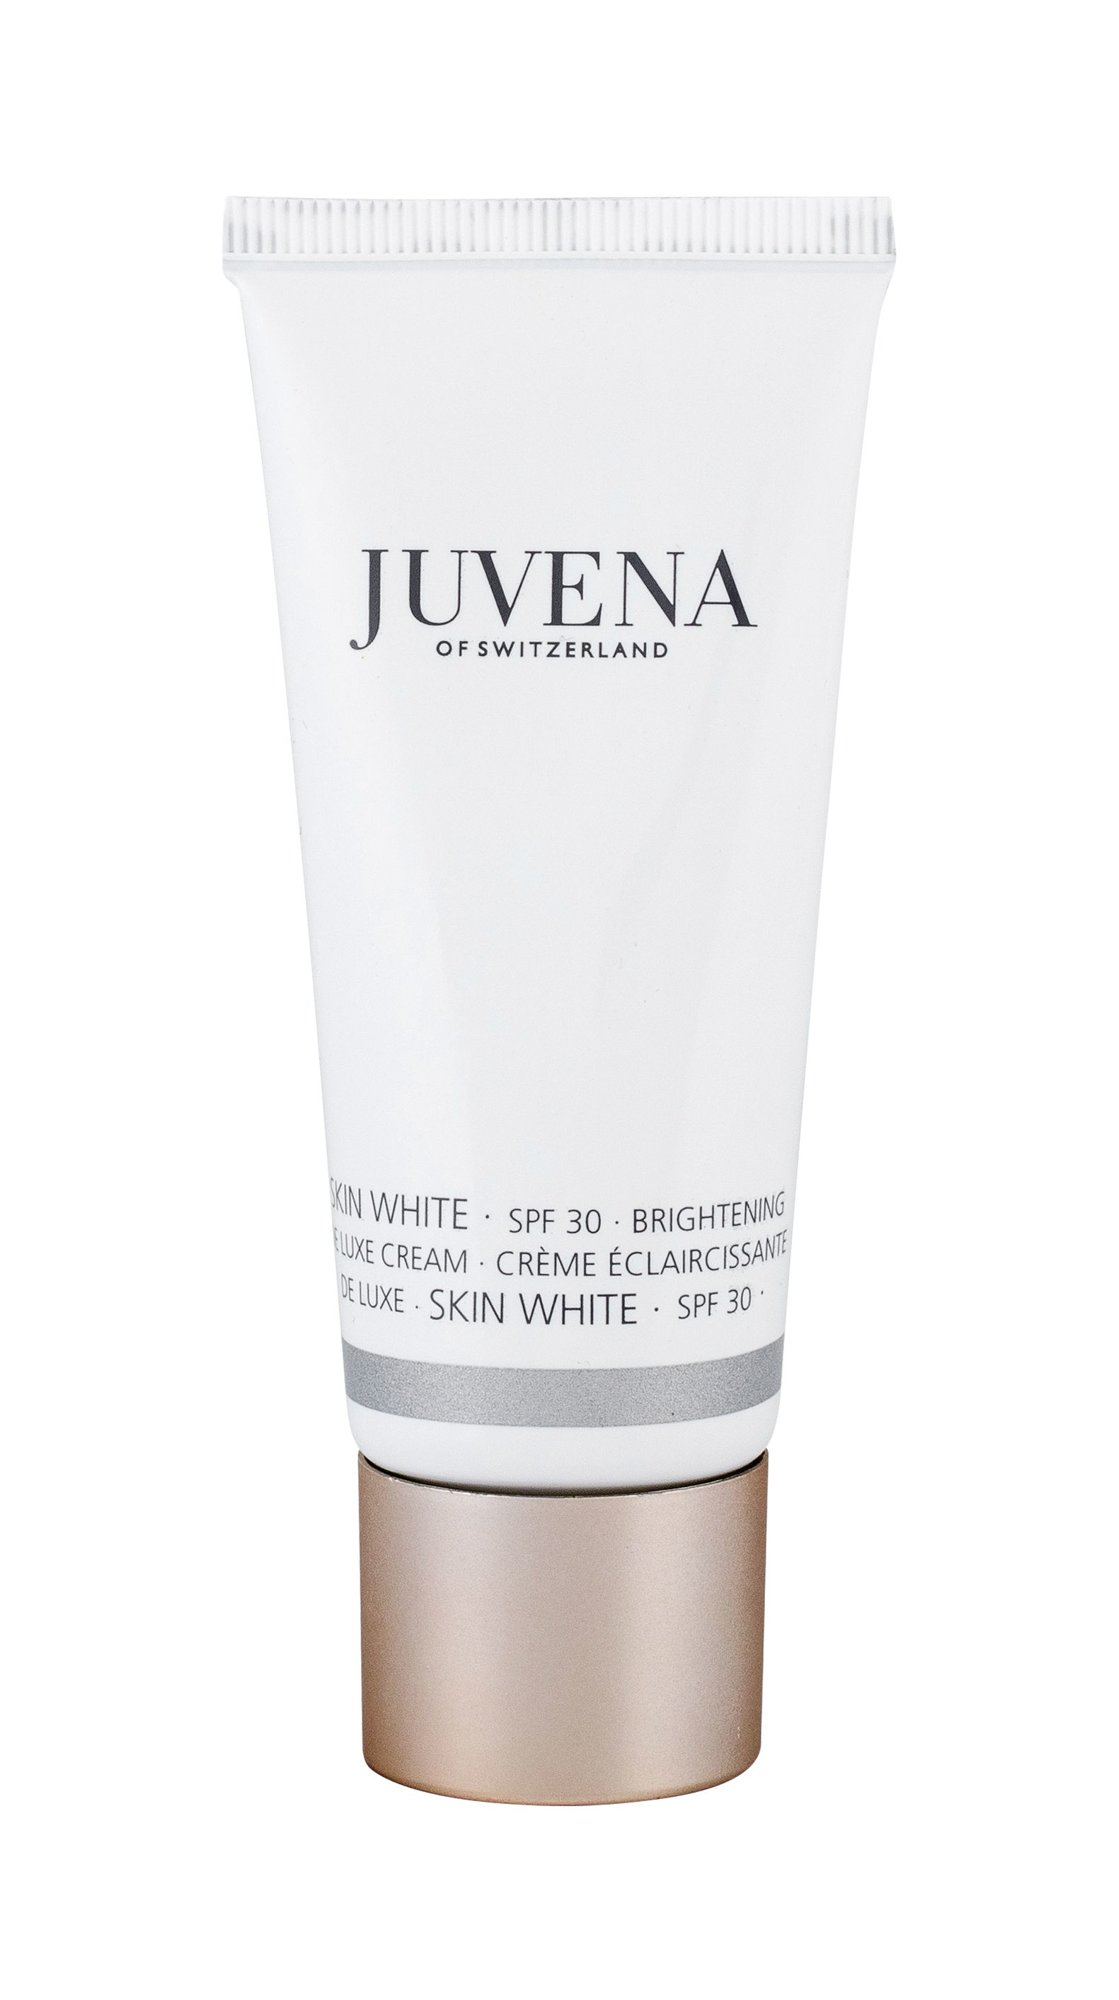 Juvena Skin White Day Cream 40ml